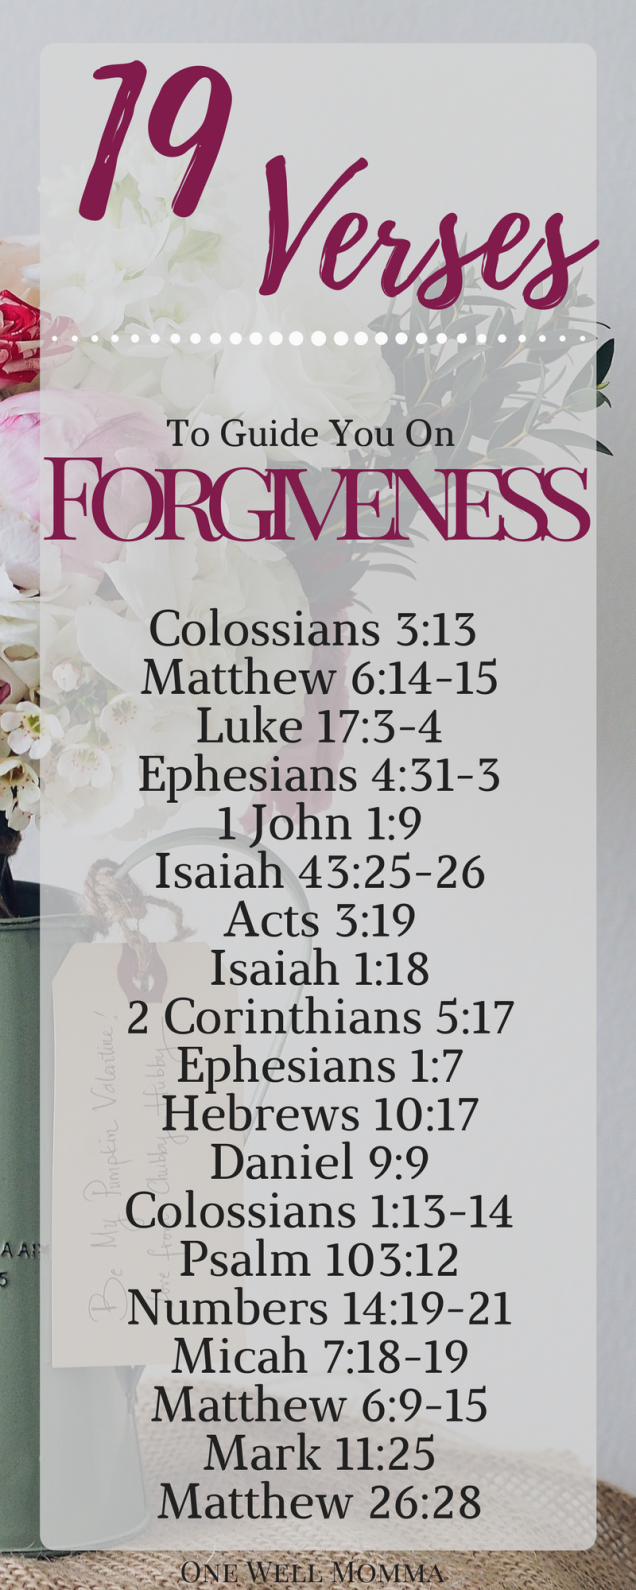 You are forgiven bible verse